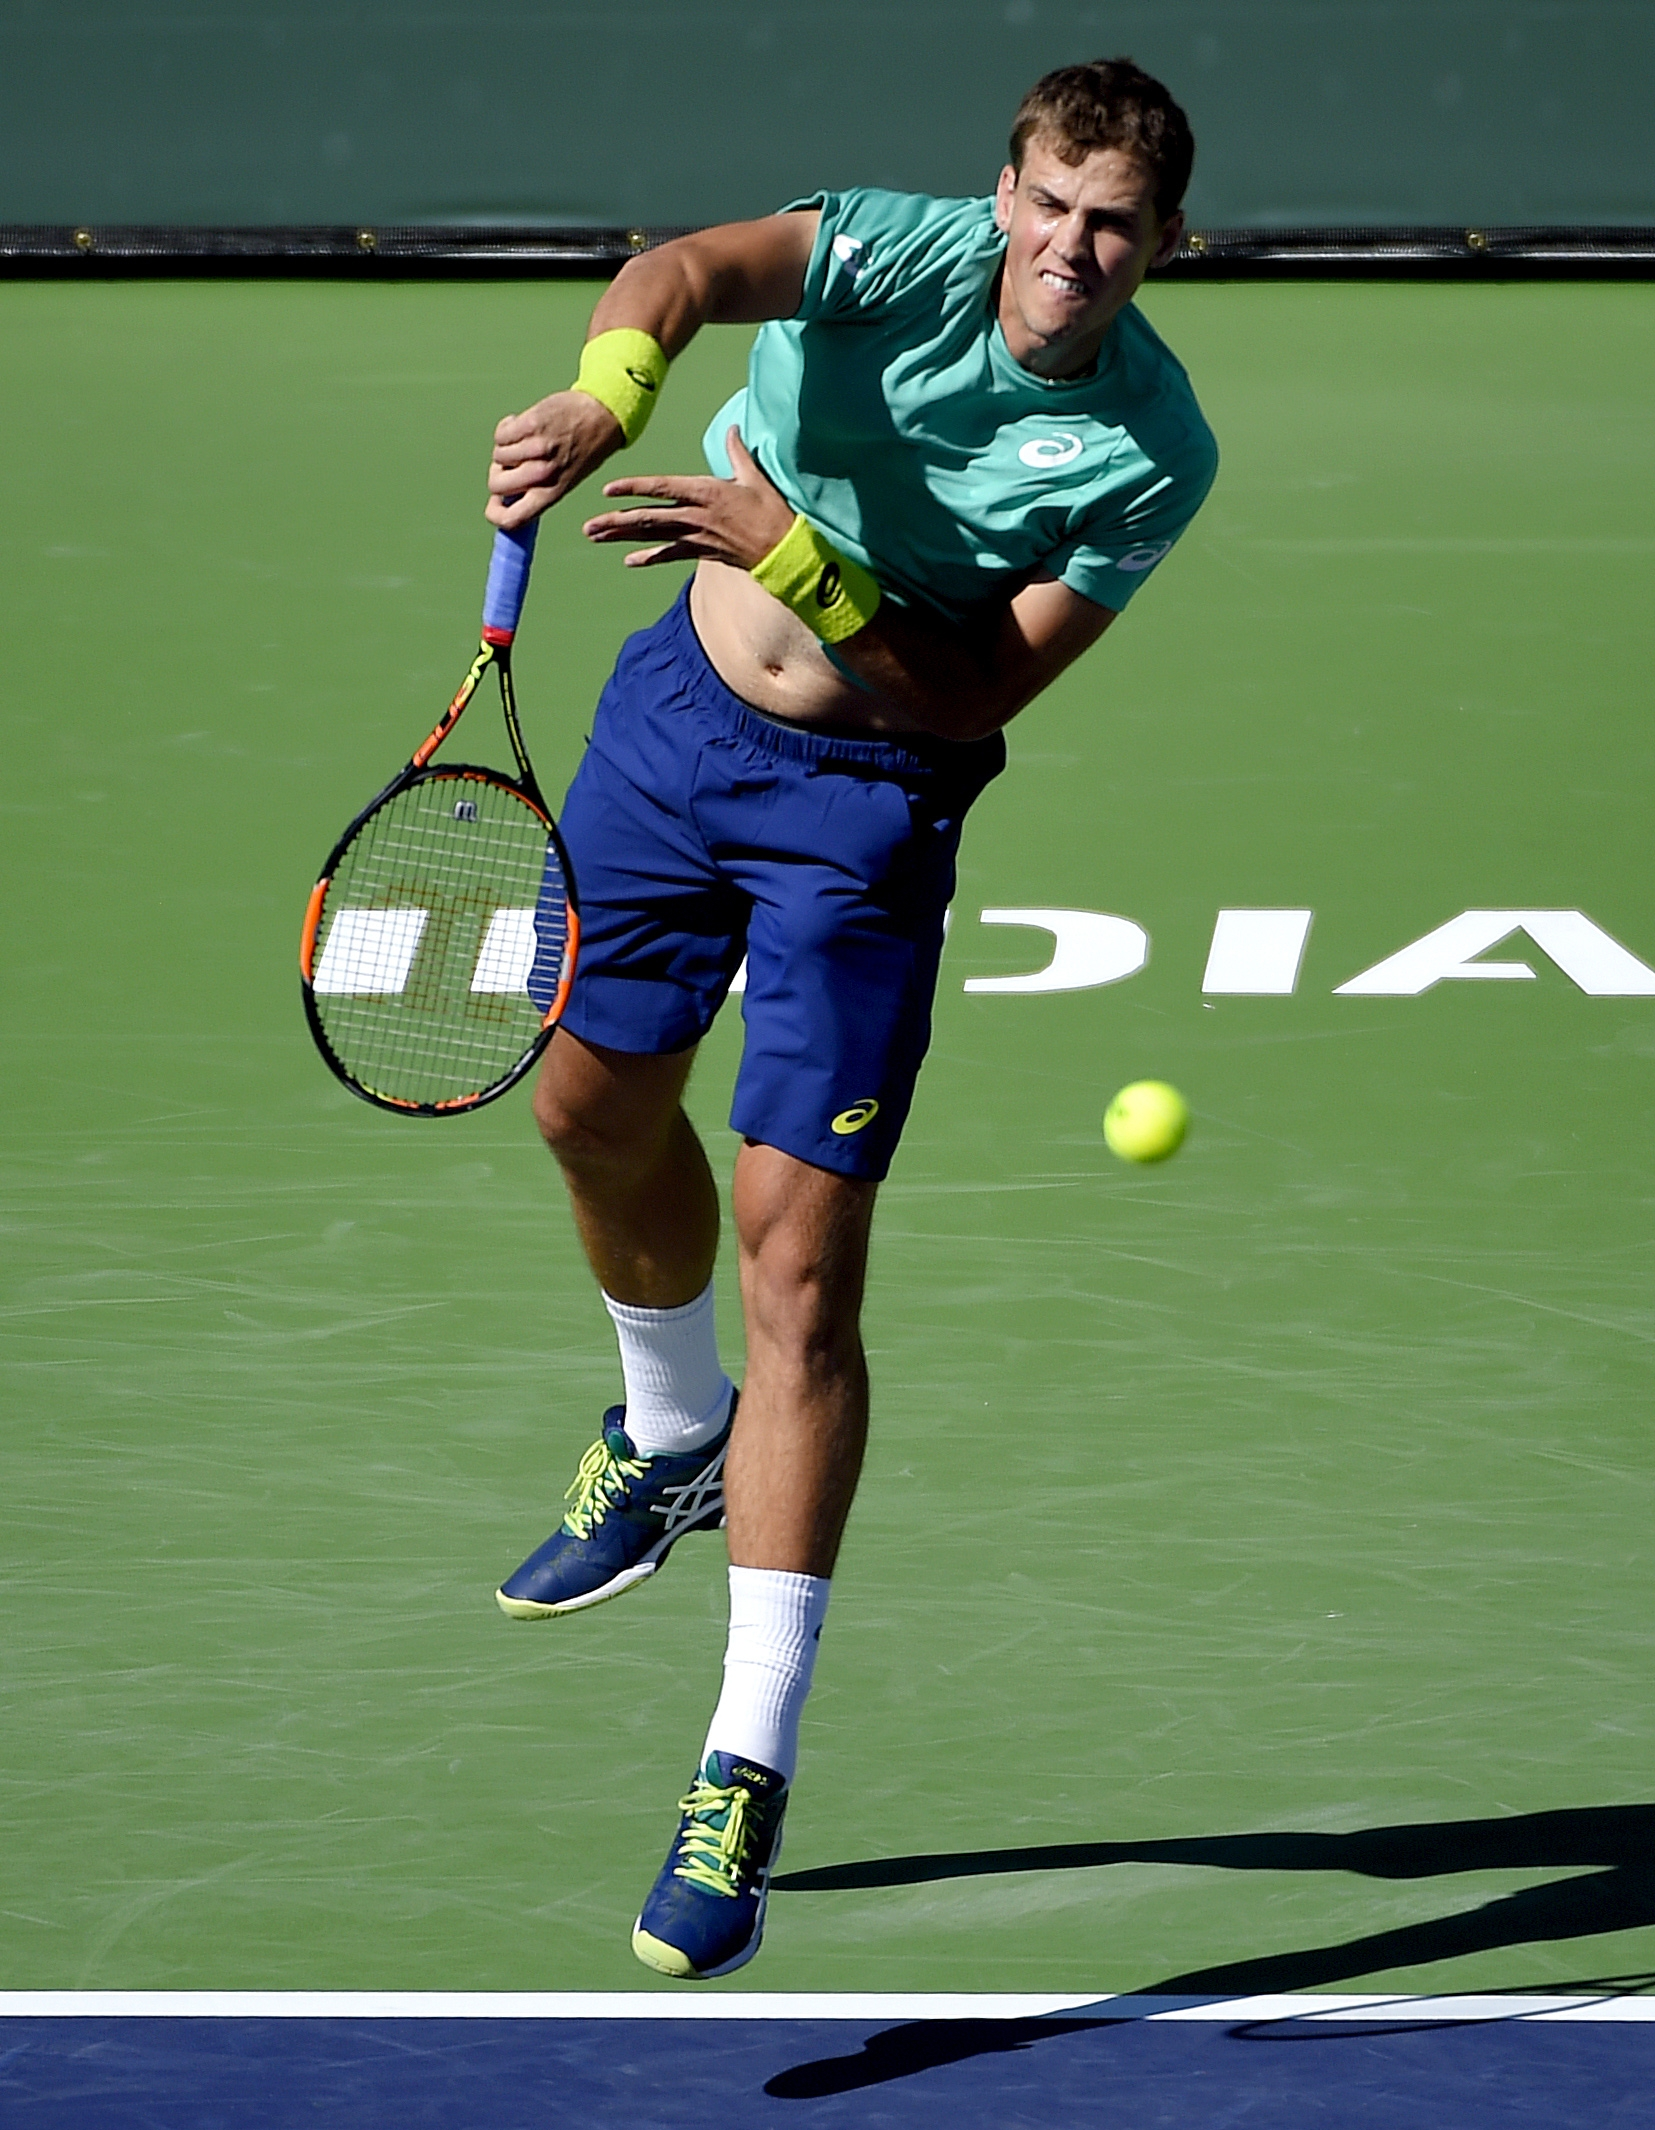 Vasek Pospisil, of Canada, serves against Jared Donaldson  during their match at the BNP Paribas Open tennis tournament, Friday, March 11, 2016, in Indian Wells, Calif. (AP Photo/Mark J. Terrill)